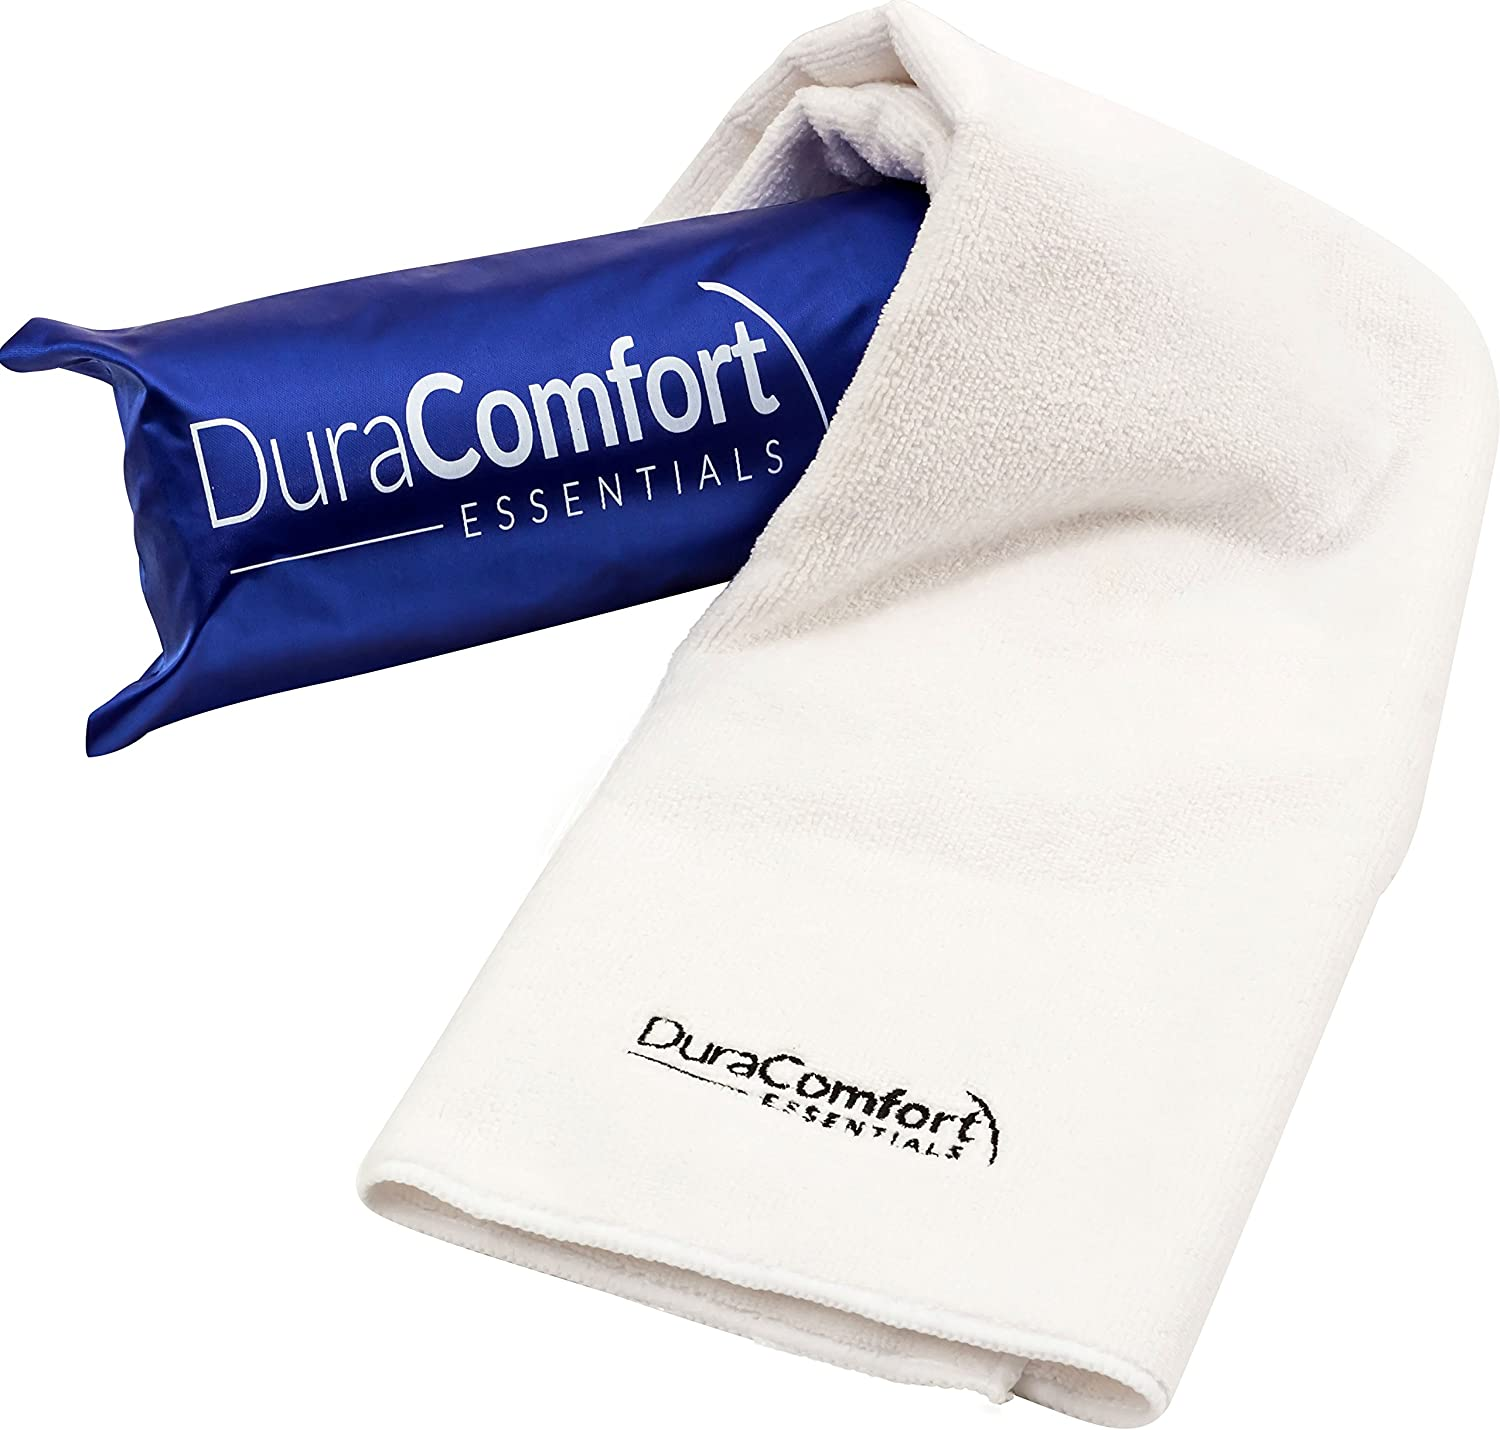 DuraComfort Essentials Super Absorbent Anti-Frizz Microfiber Hair Towel, Large 41 x 19-Inches : Beauty